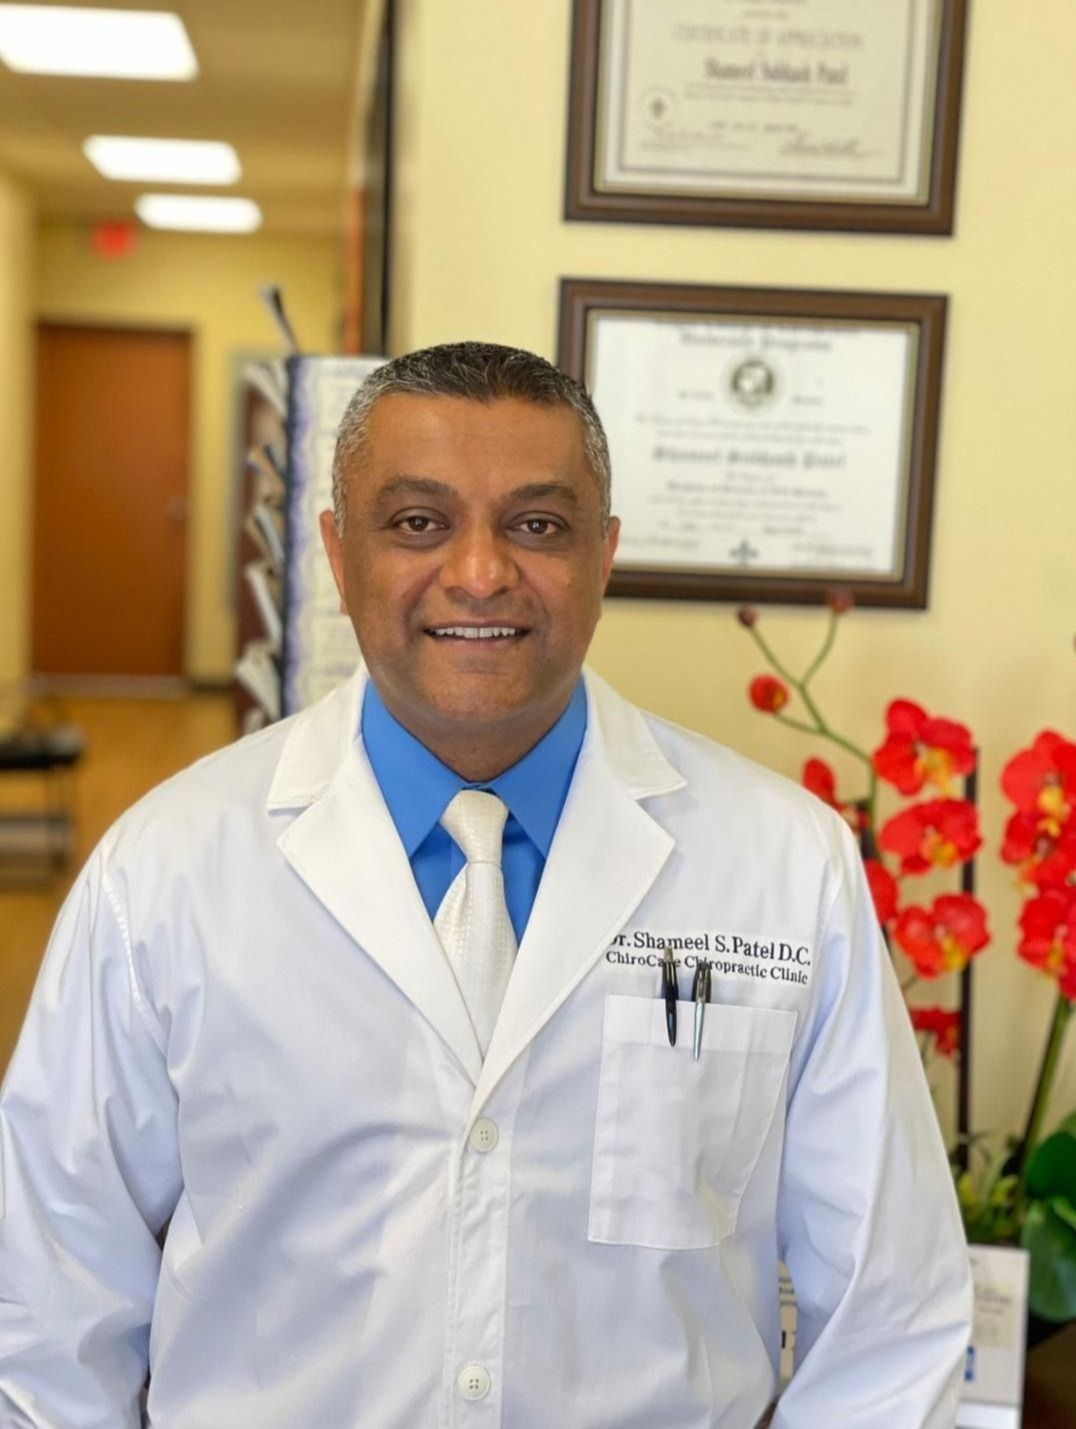 dr. patel provides excellent chiropractic care to his patients at arrowhead clinic.